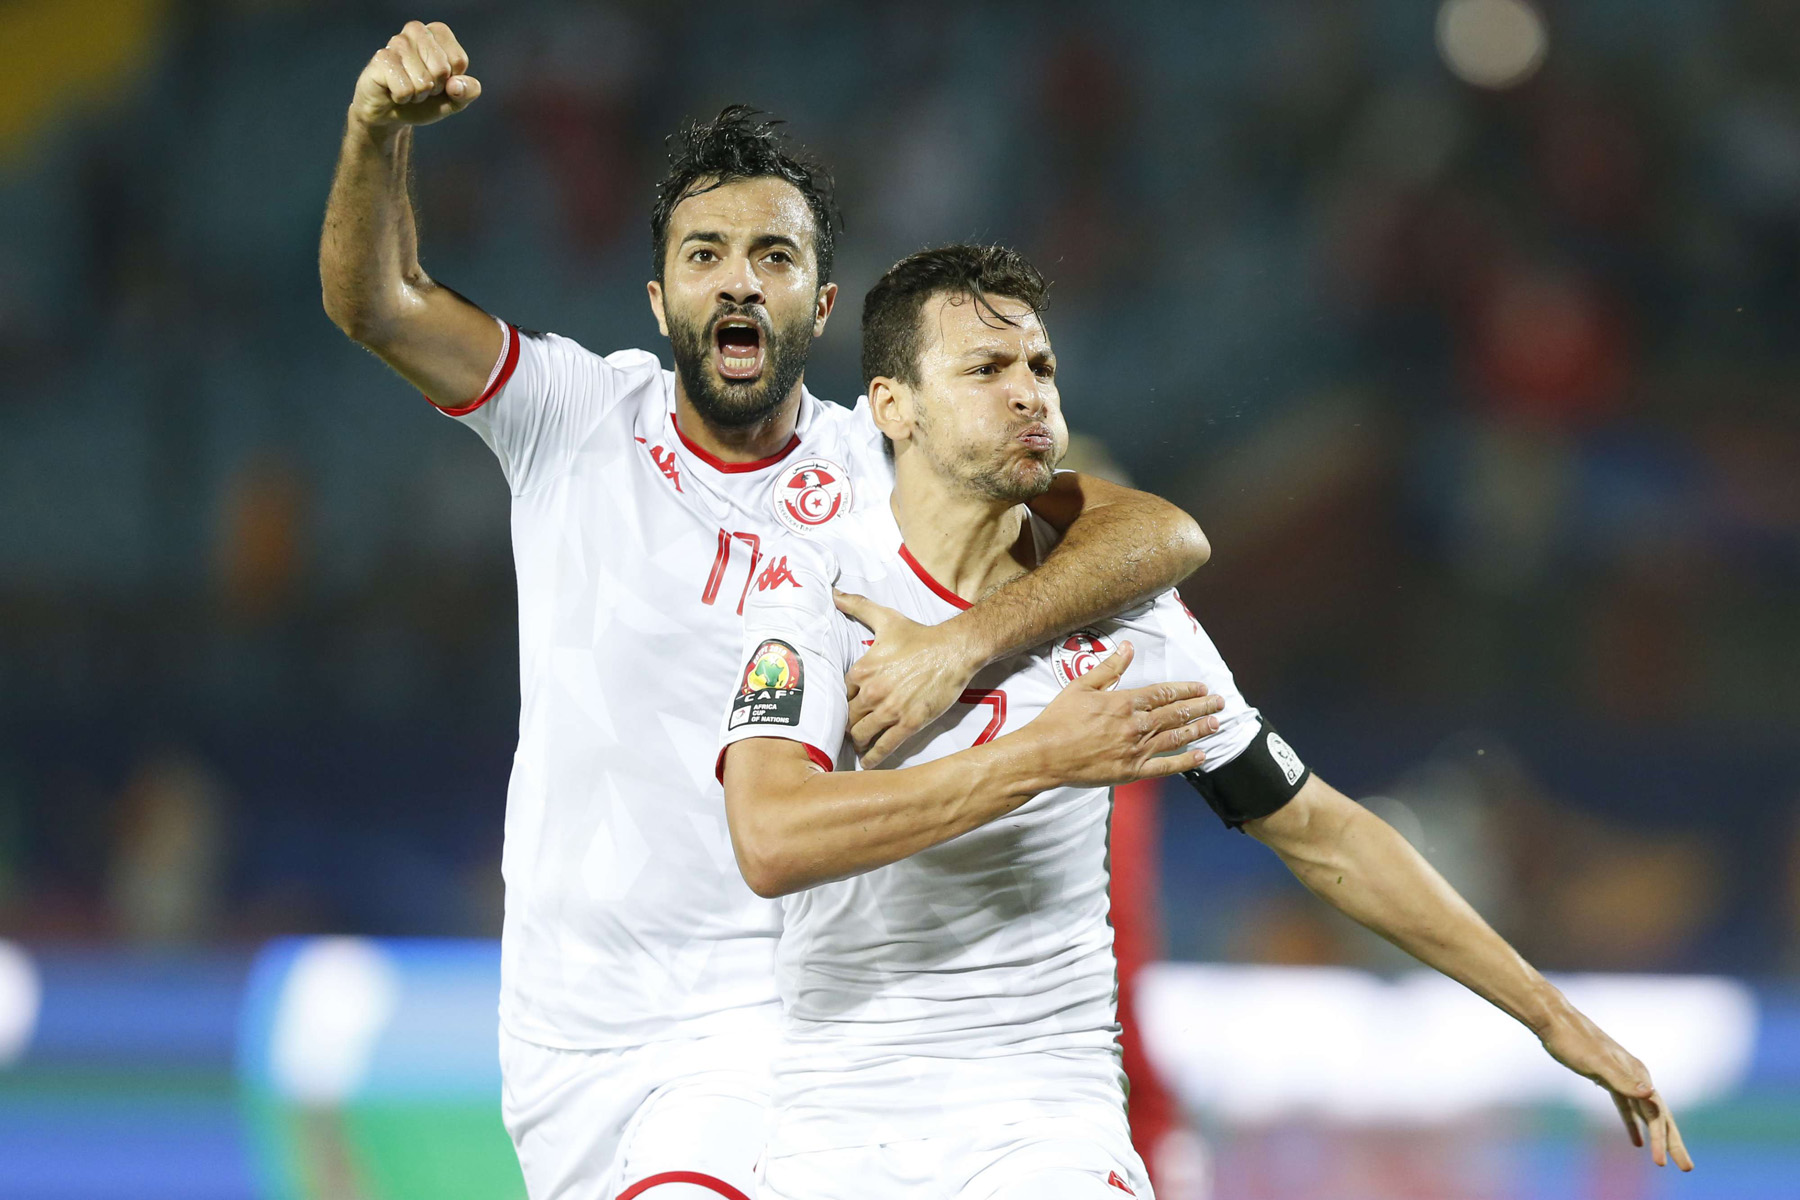 Tunisia's Youssef Msakni, right and Tunisia's Taha Khenissi celebrate after scoring during the African Cup of Nations quarterfinal soccer match between Madagascar and Tunisia in Al Salam stadium in Cairo, Egypt, Thursday, July 11, 2019. (AP)